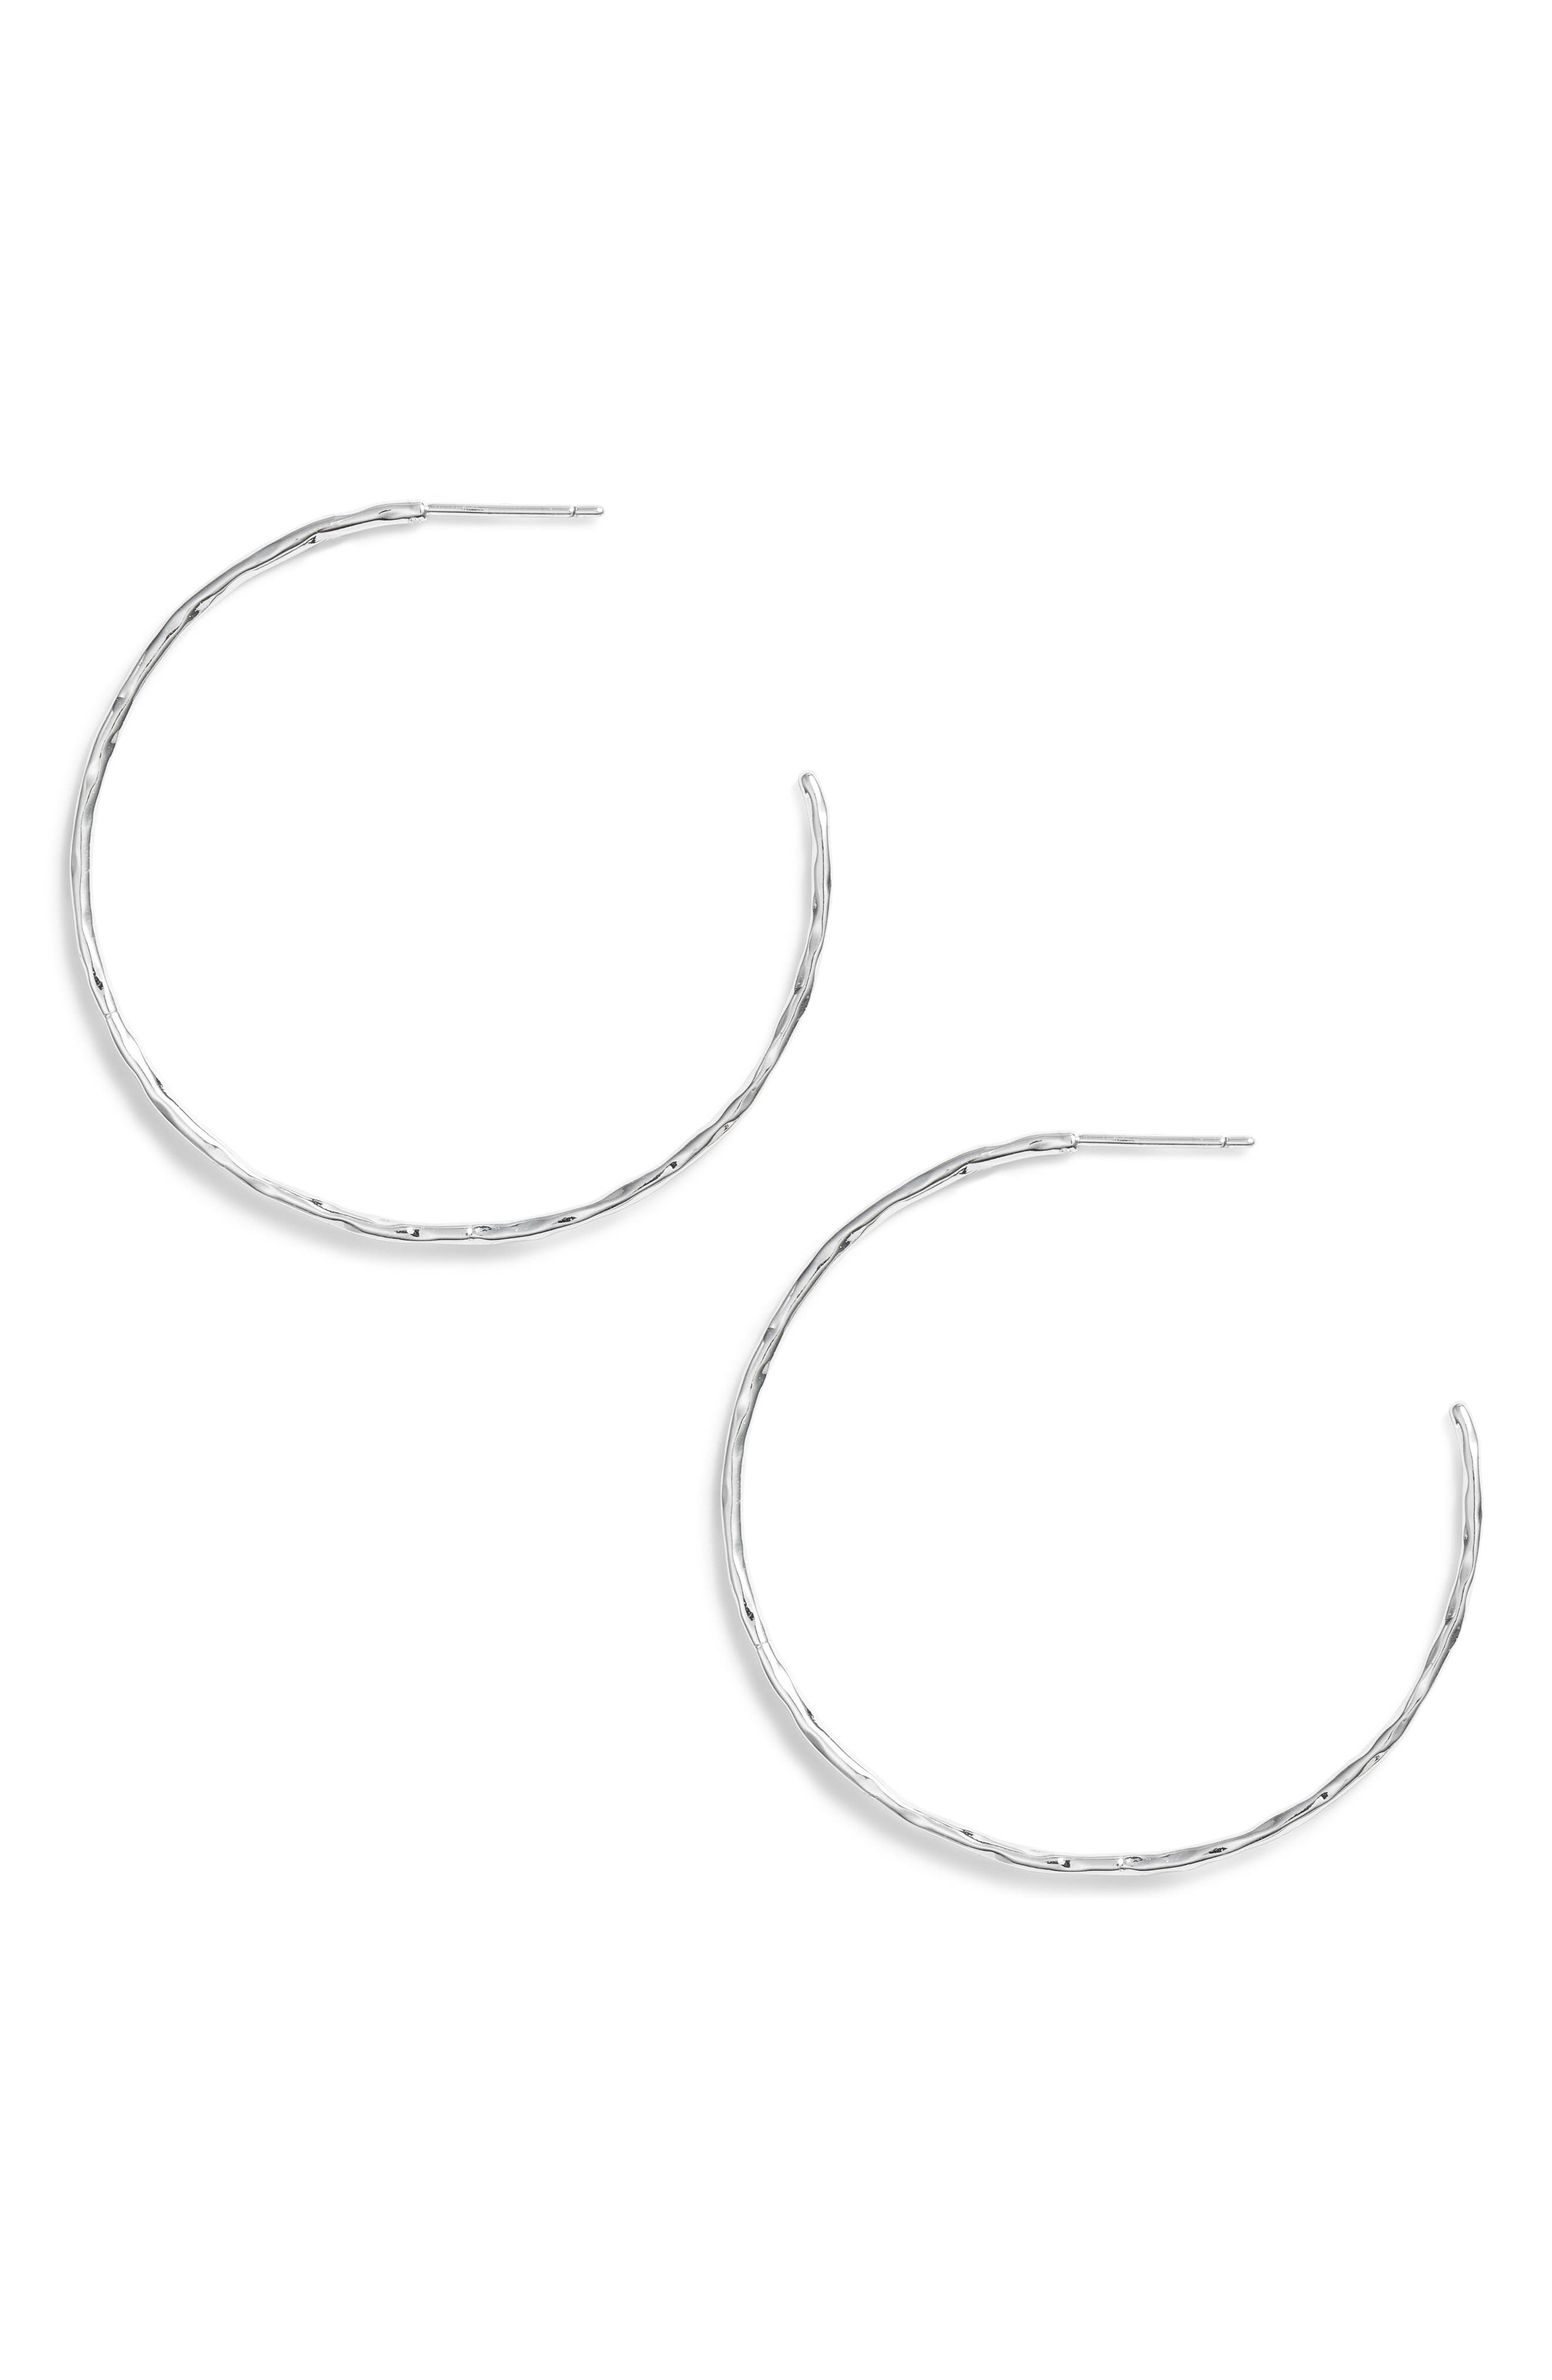 GORJANA, Taner Hoop Earrings, Main thumbnail 1, color, SILVER